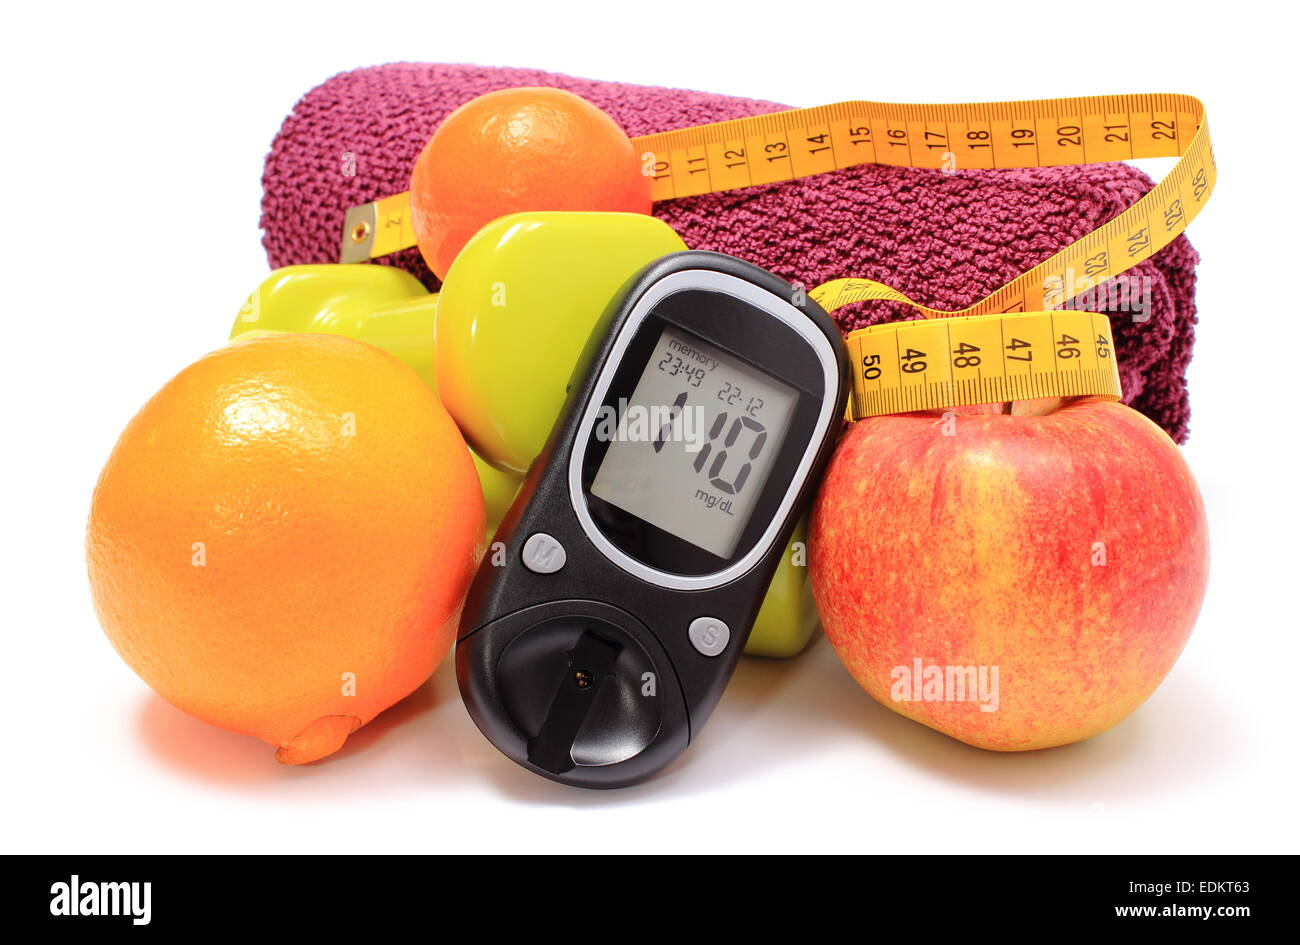 Glucometer, fresh fruits, tape measure, dumbbells and purple towel for using in fitness, concept for diabetes, slimming, - Stock Image